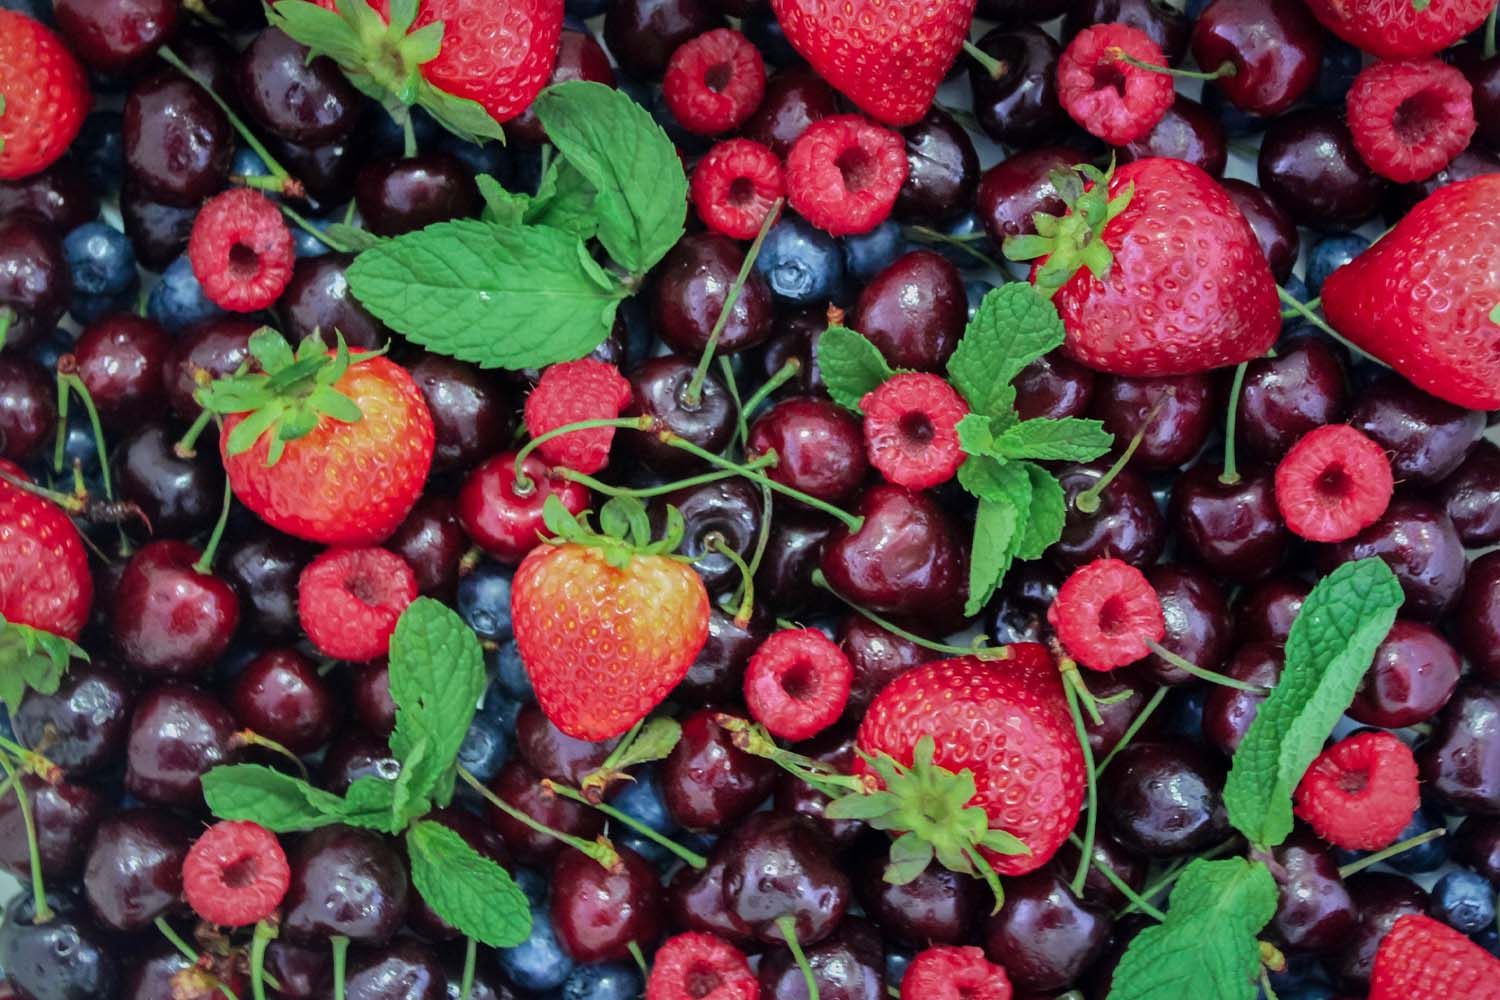 berries-garden-to-table-an-extension-of-your-kitchen-alair-cuyahoga-falls